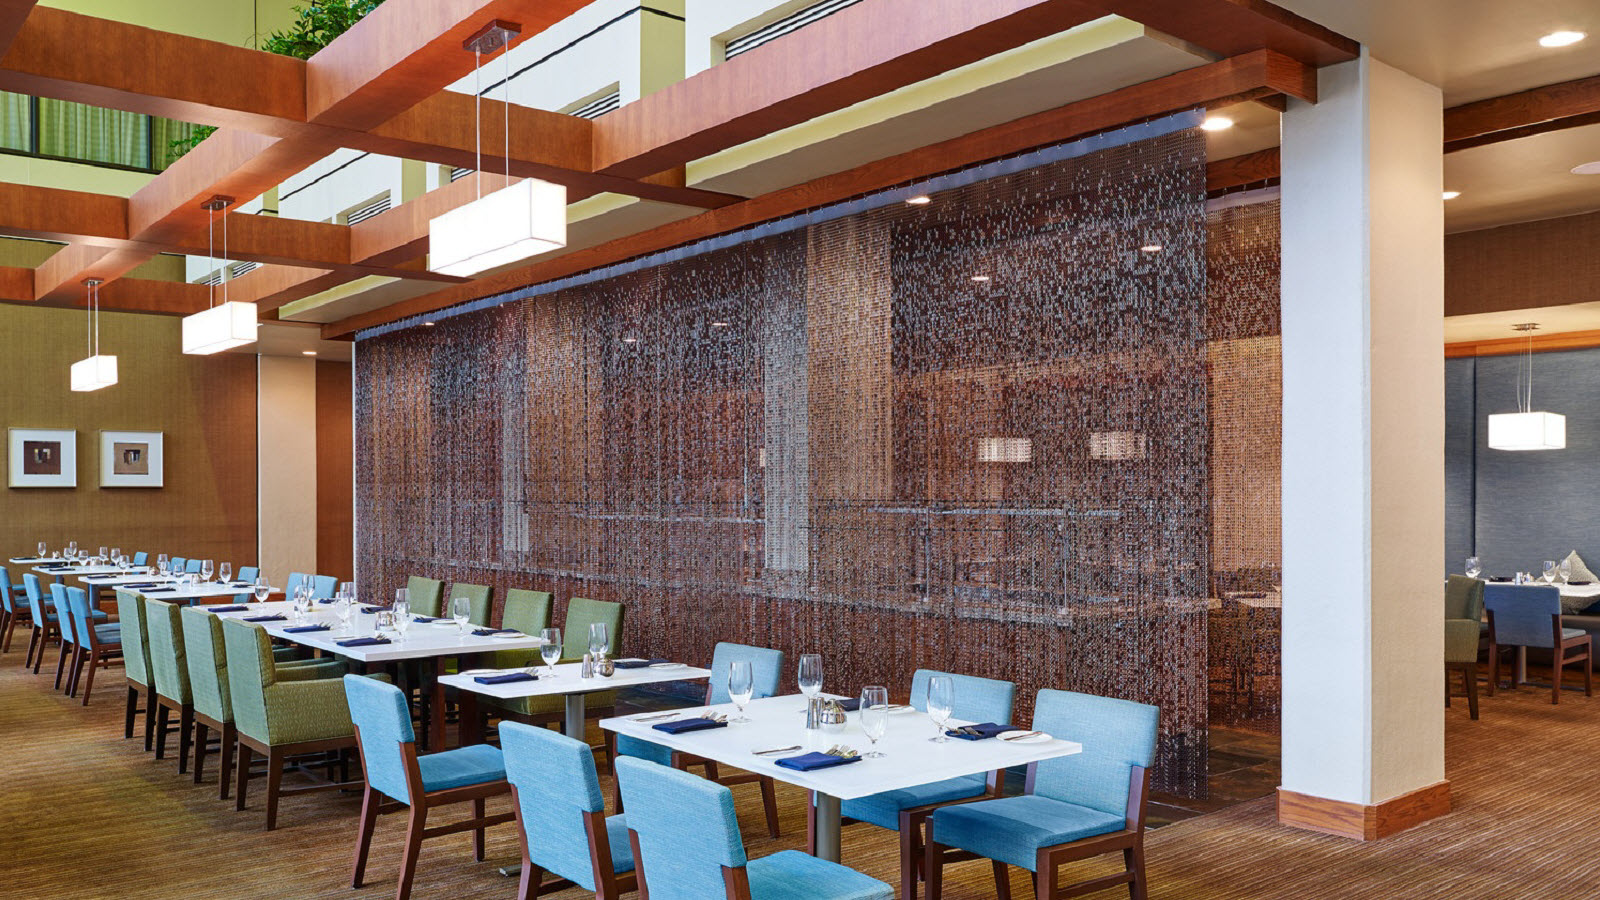 https://www.hotelsbyday.com/_data/default-hotel_image/0/1162/the-westin-atlanta-airport-cecilias-southern-table-restaurant.jpg